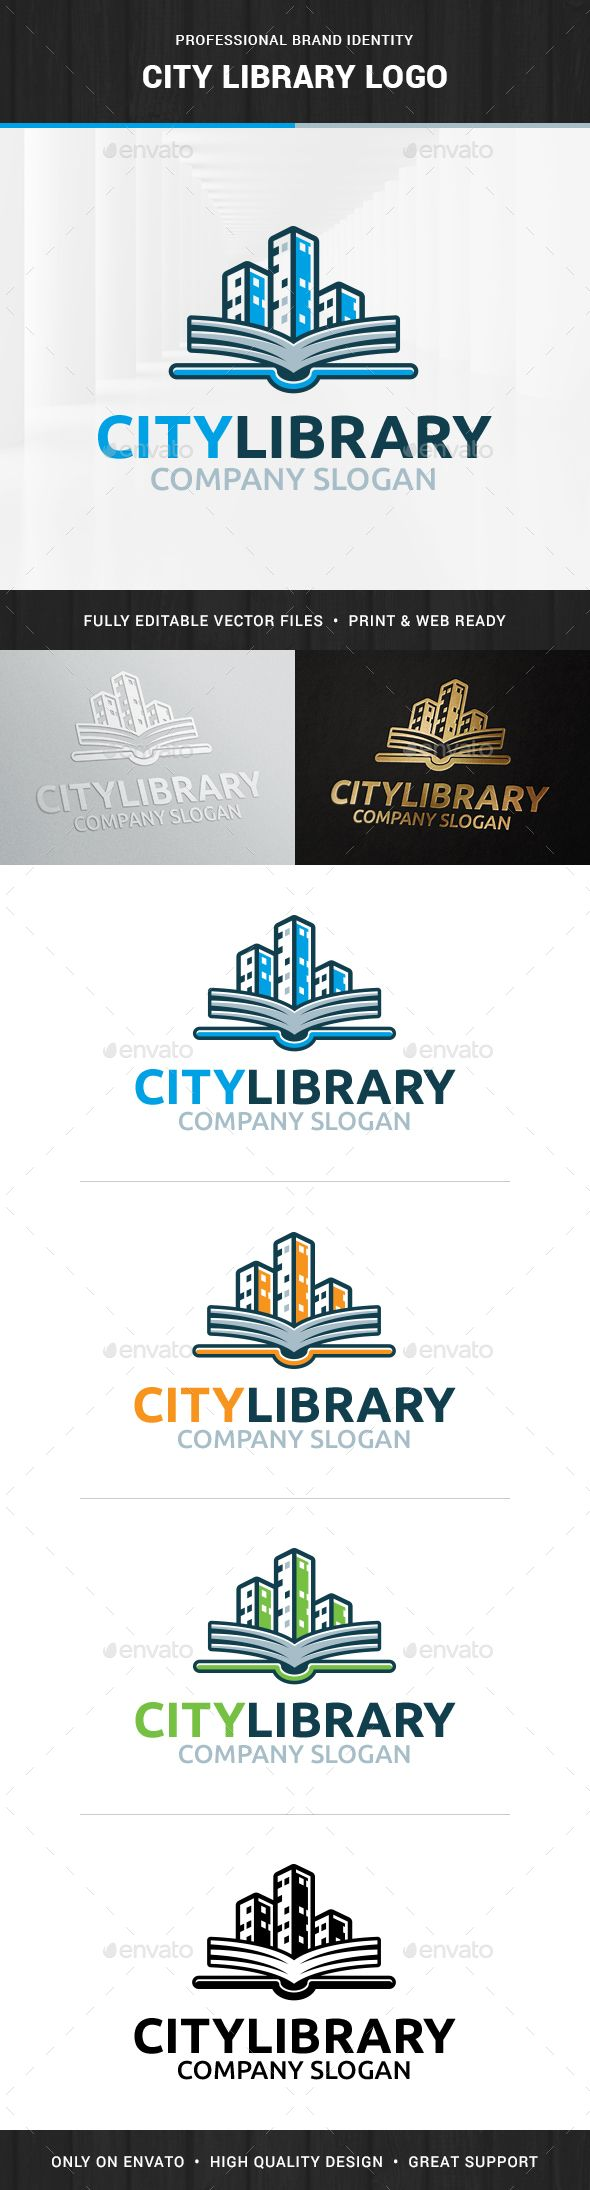 The City Library Logo Template A stylish and modern logo for many kinds of business. All elements are fully vector and can be used